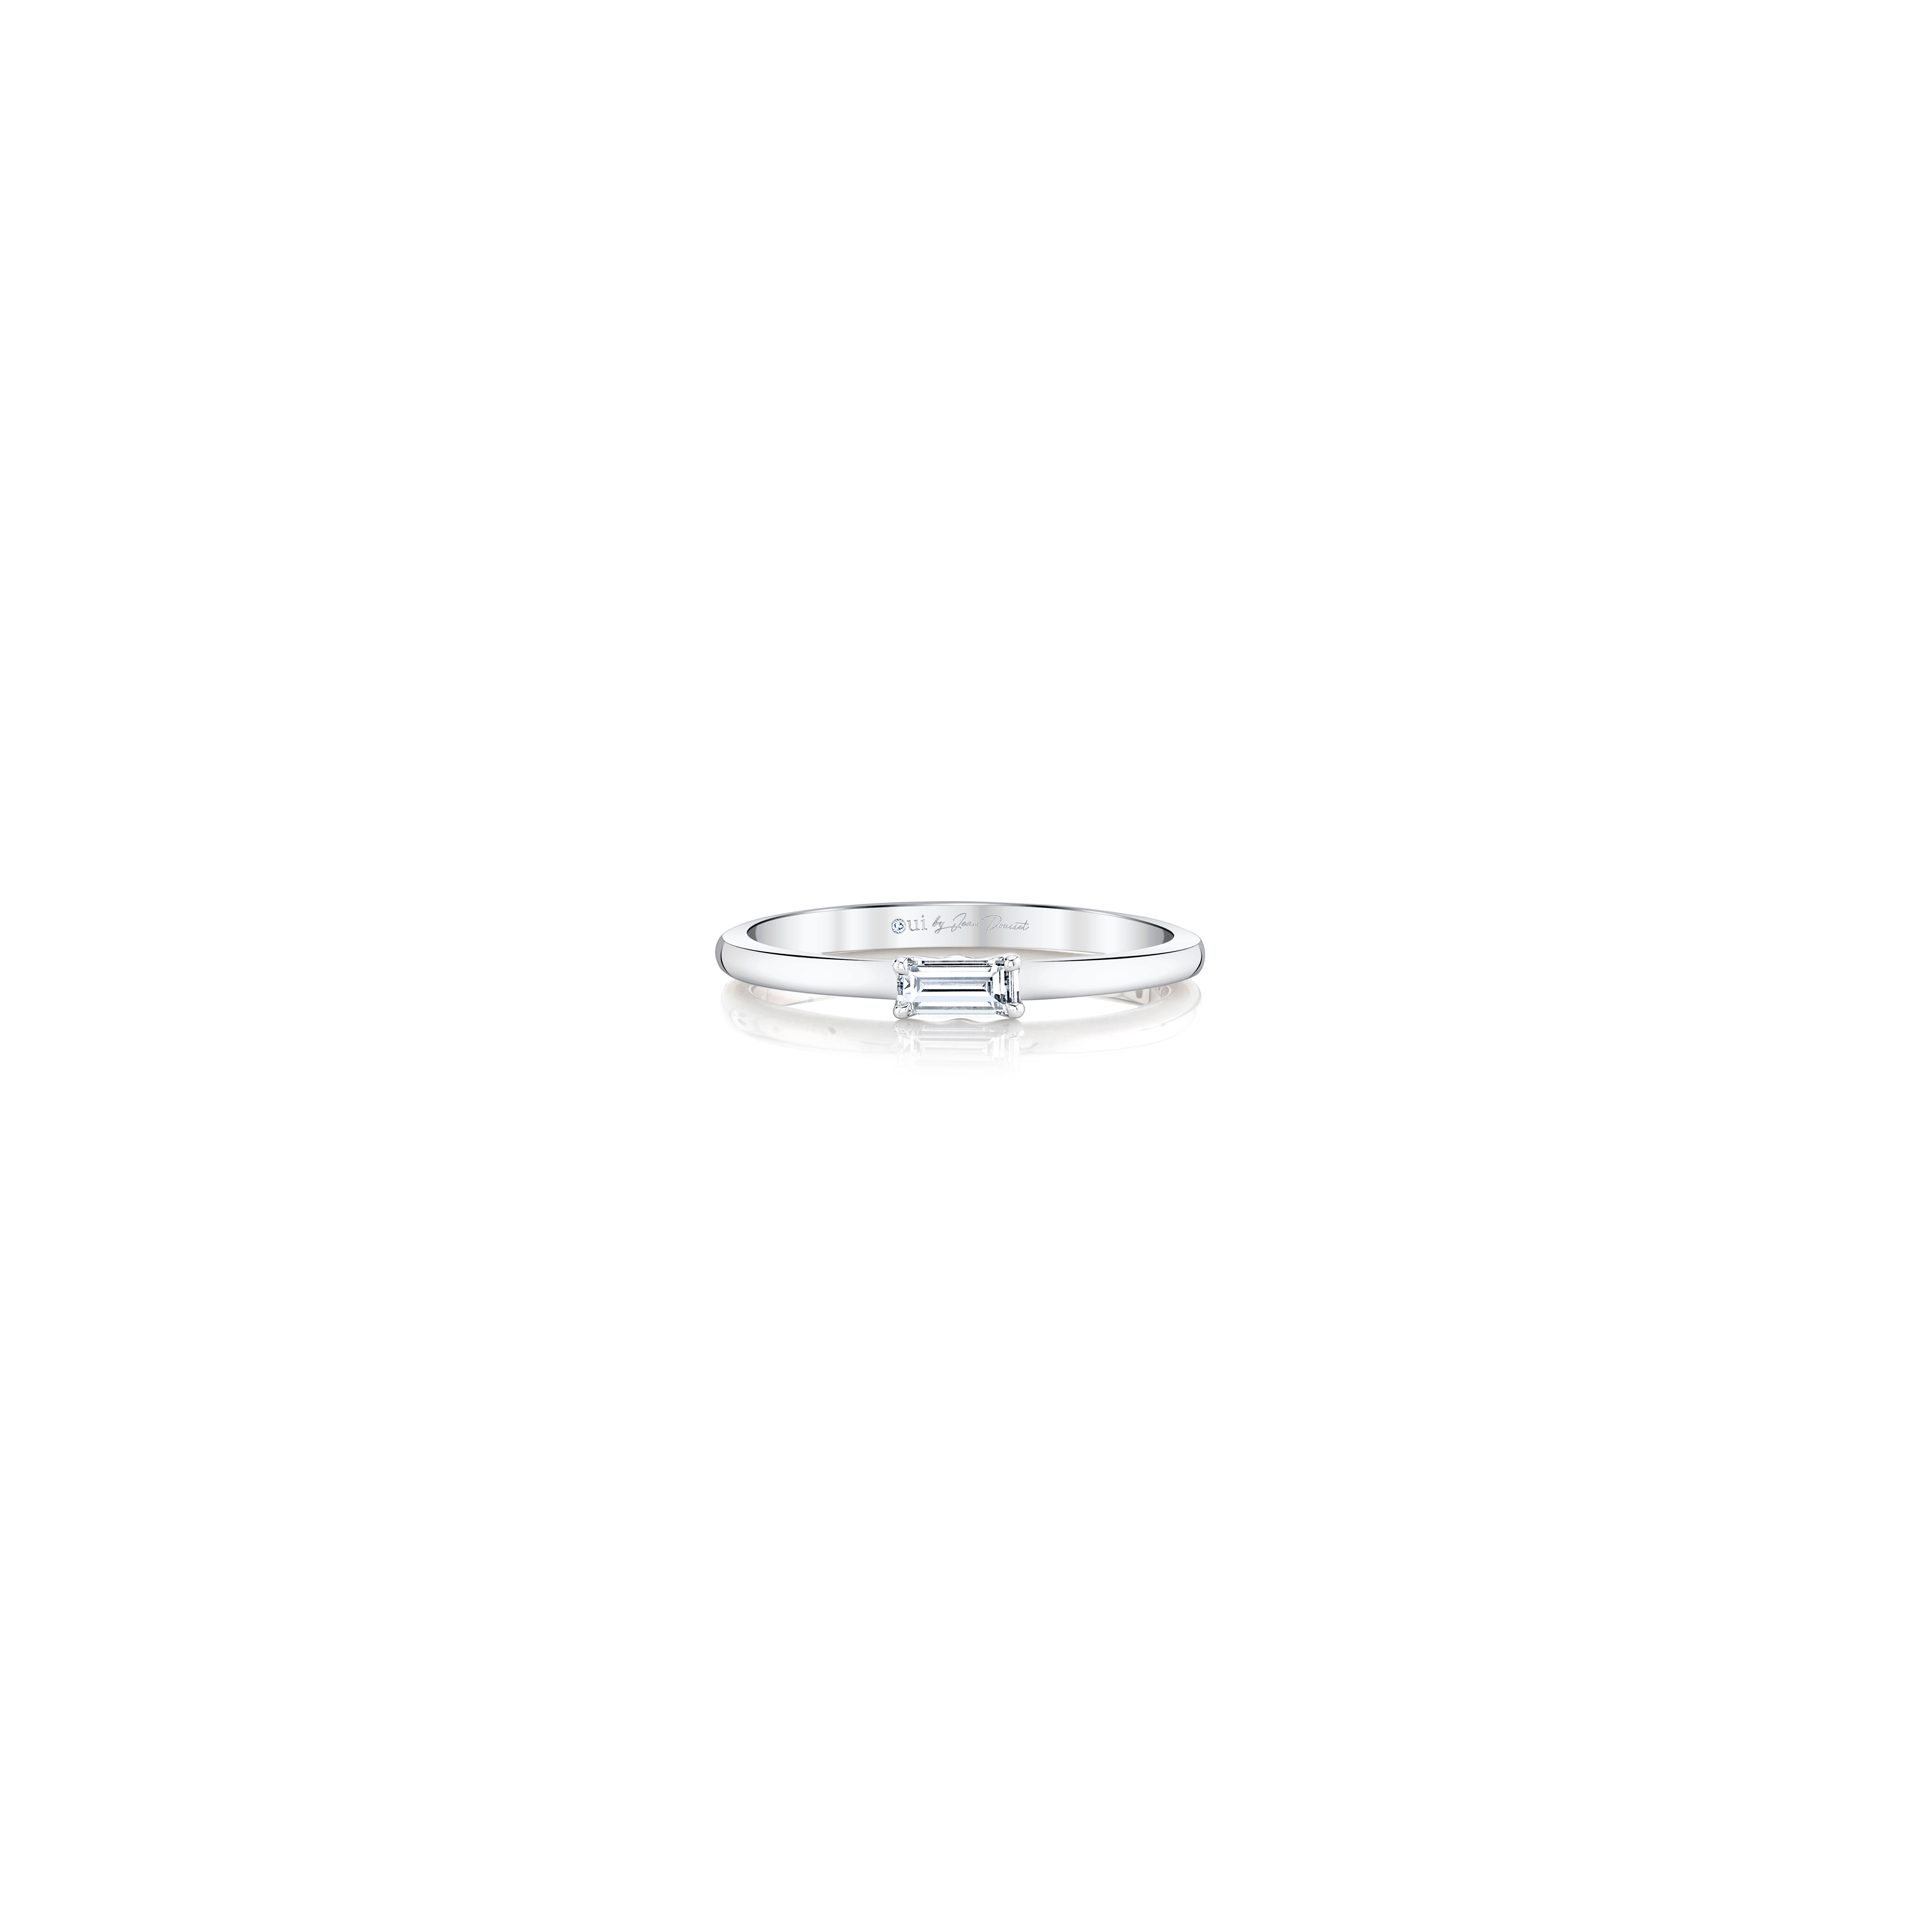 La Petite Baguette Diamond Wedding Band in 18k White Gold Front View by Oui by Jean Dousset